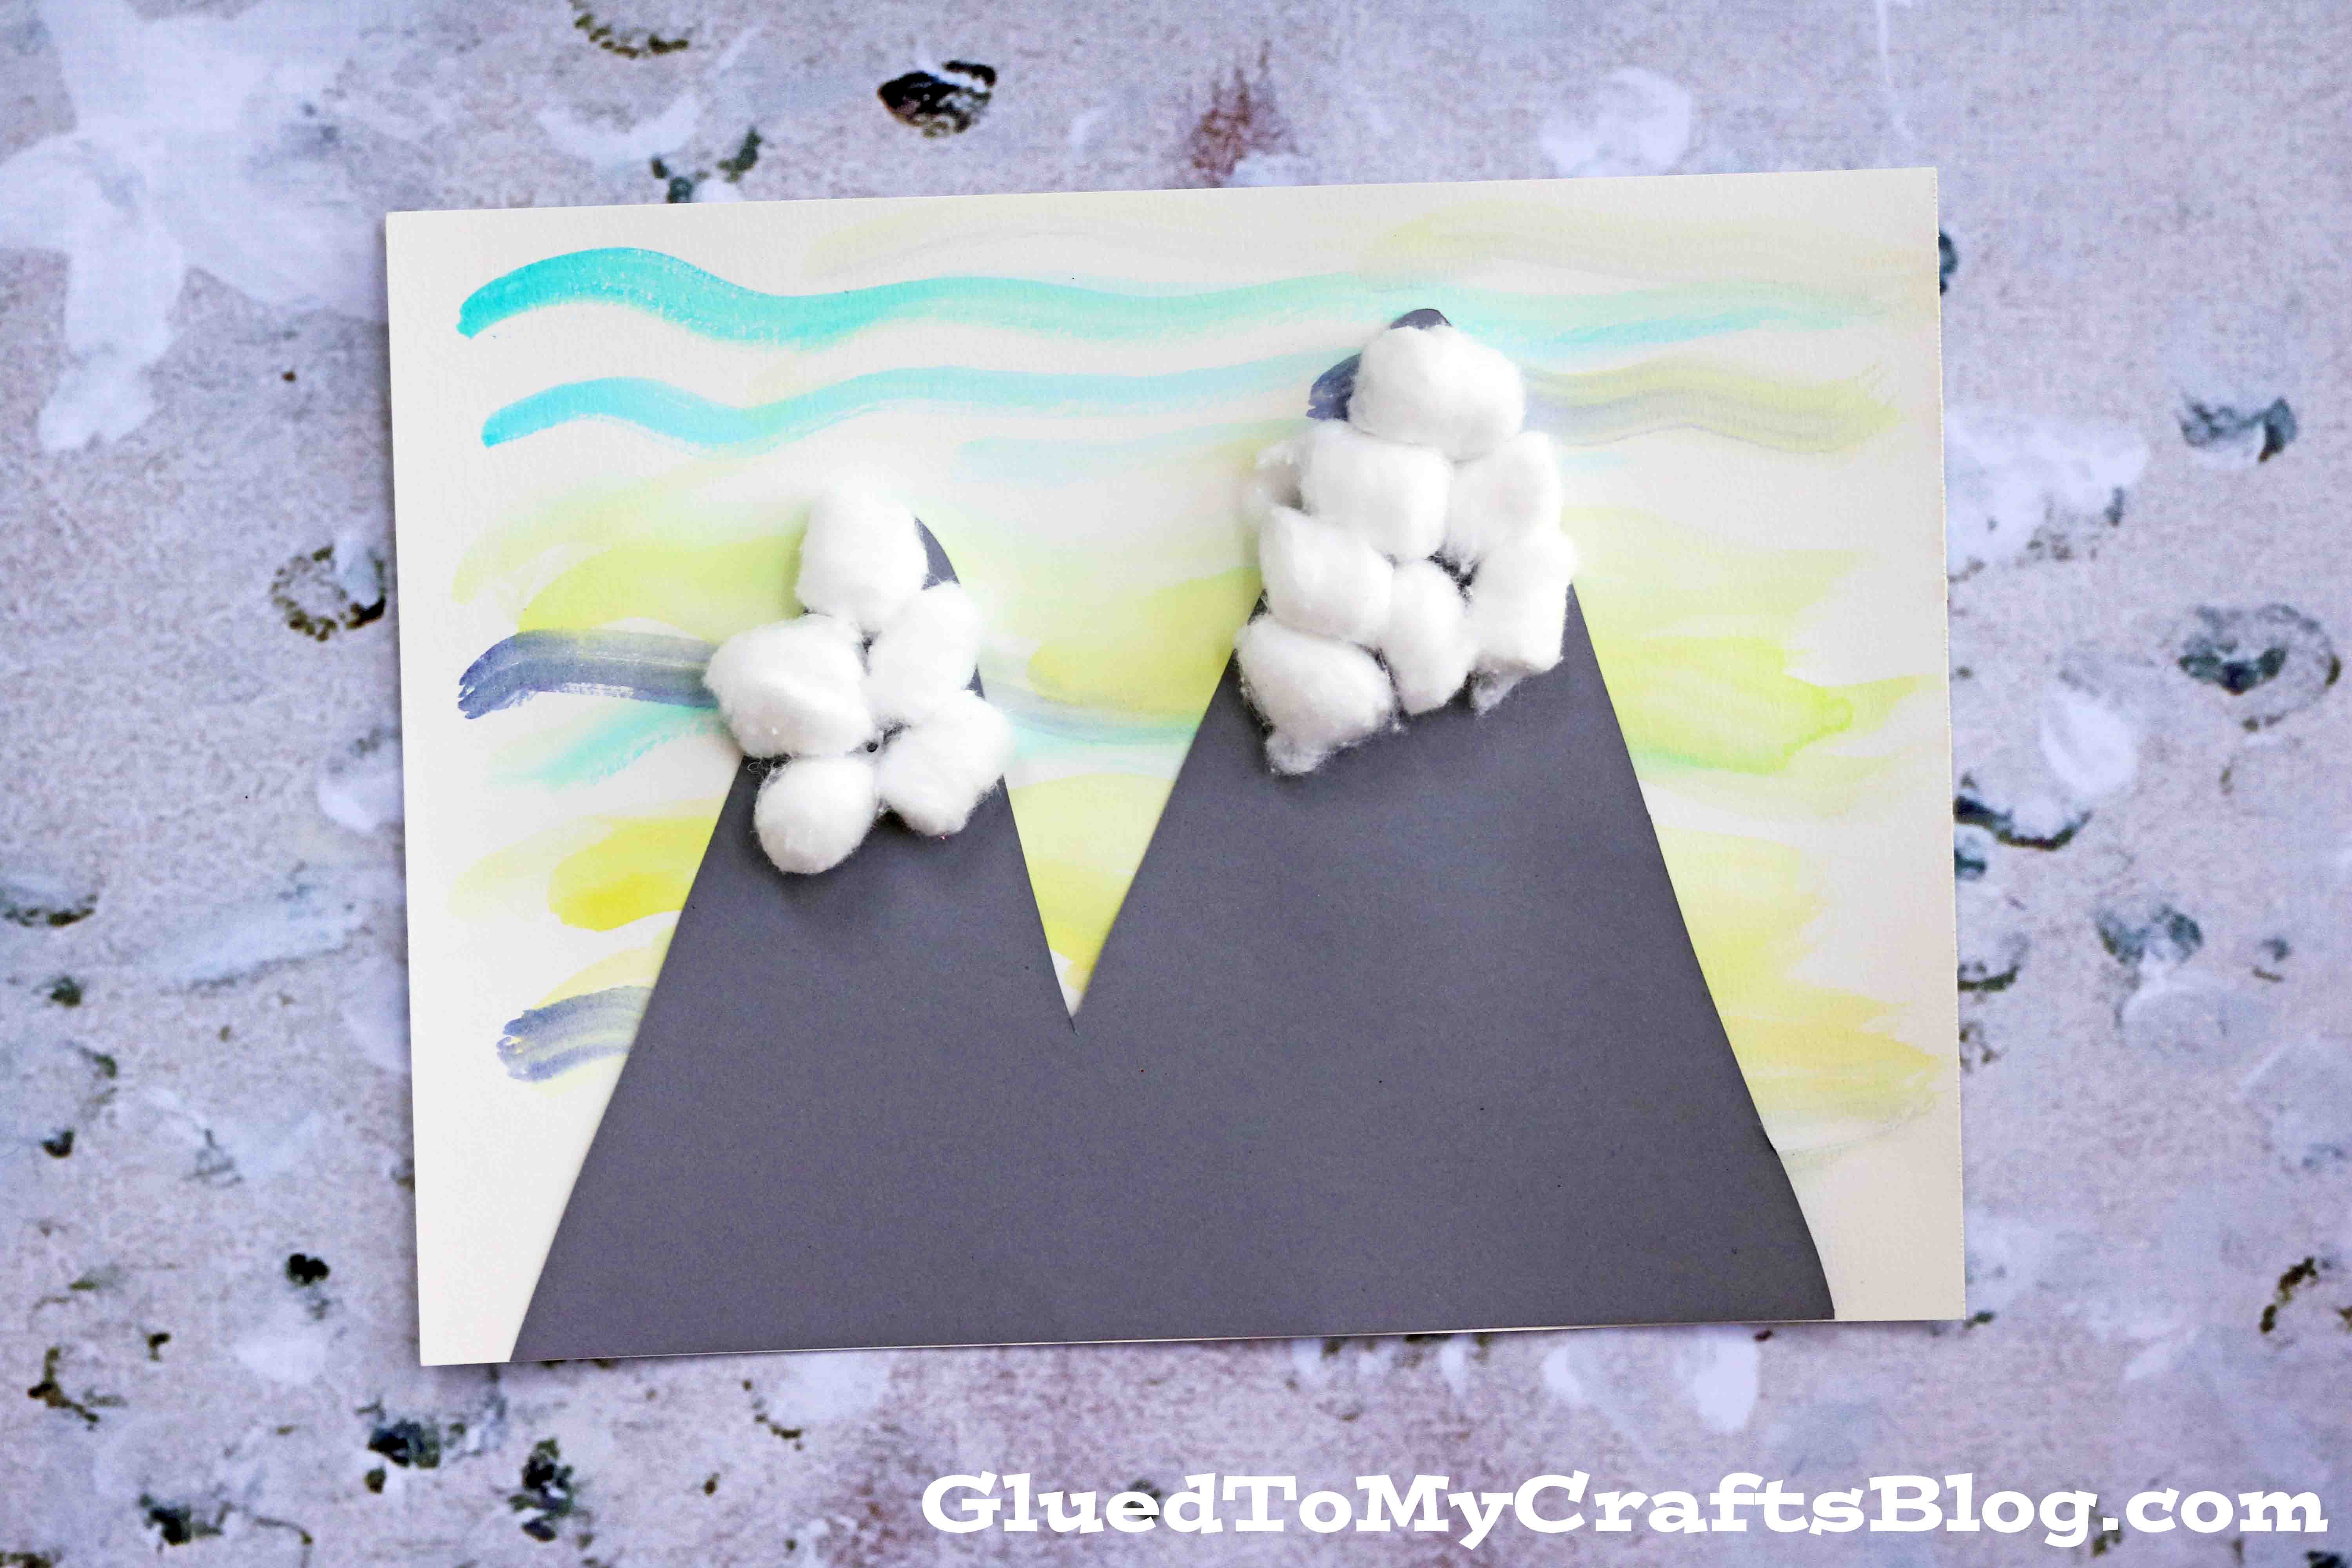 Watercolor Snowy Mountain Scene Kid Craft Glued To My